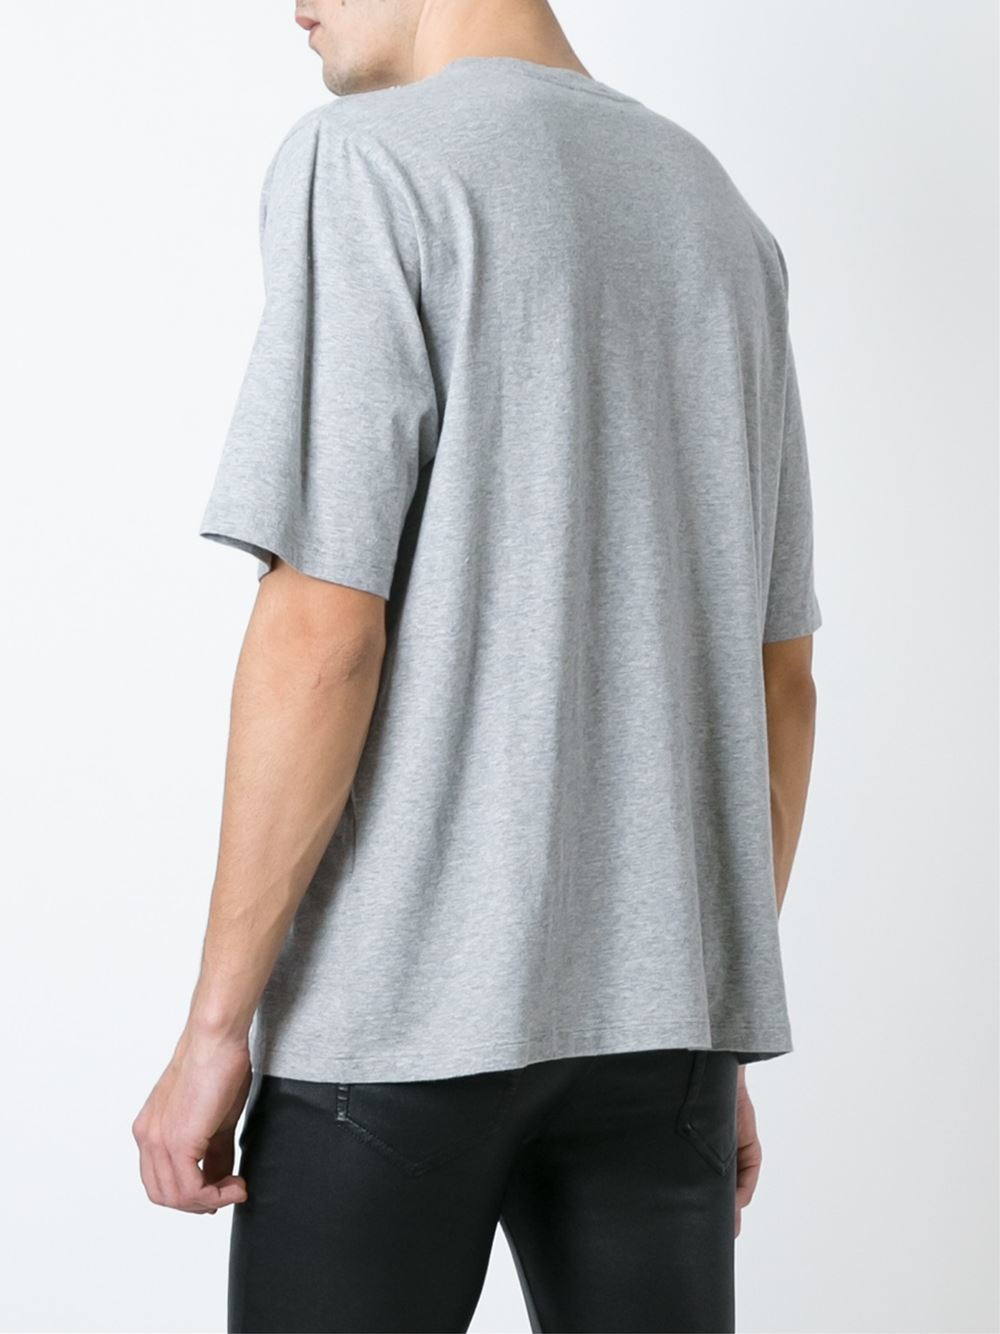 Saint laurent classic boxy t shirt in gray for men grey for Saint laurent t shirt